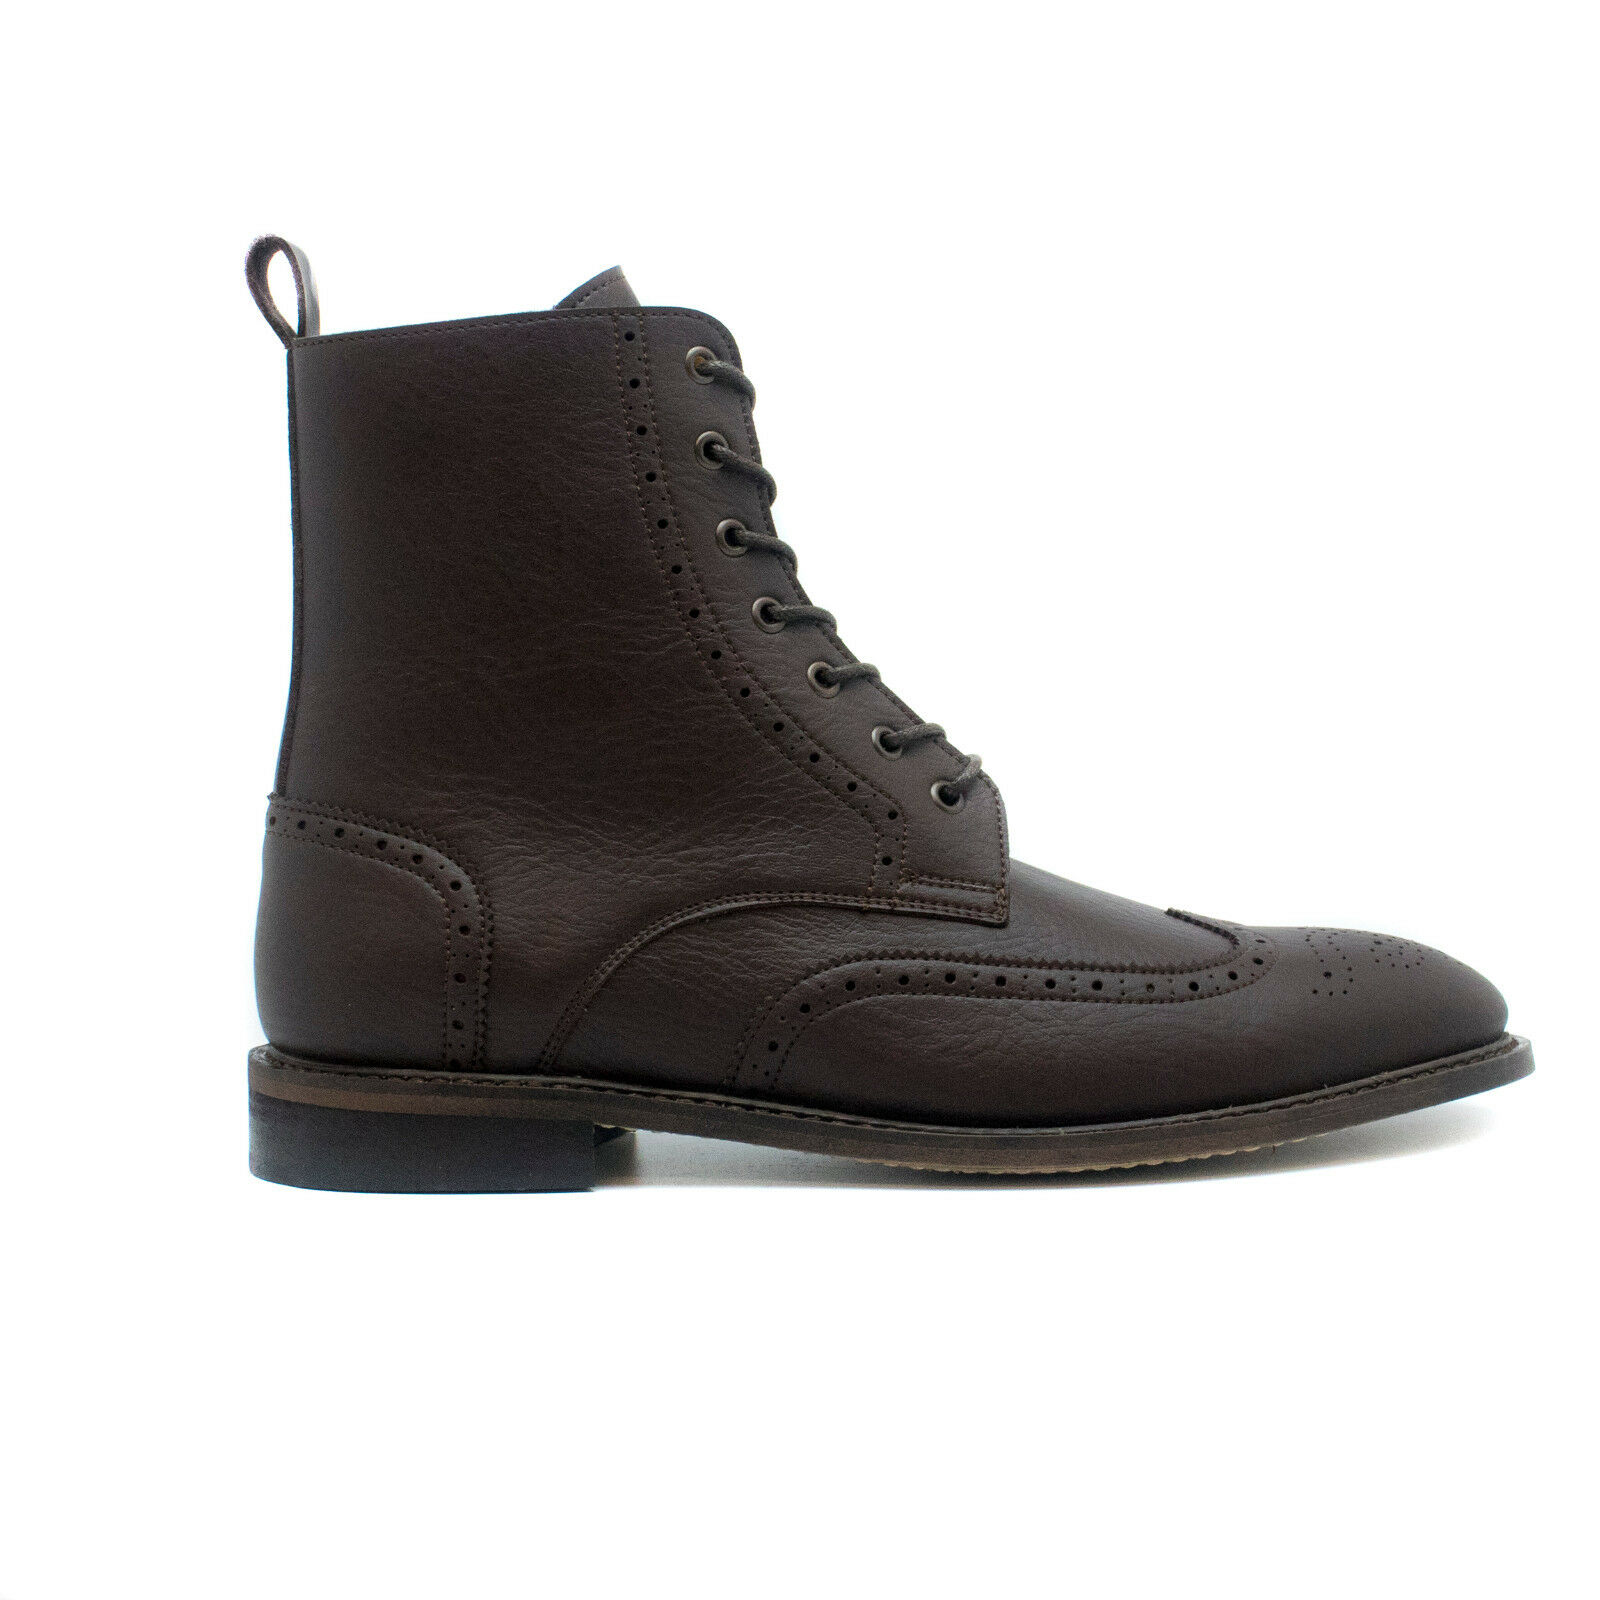 Ankle Boot Lace-Up on Vegan Leather Lined Breathable Brogue Non-Slip Lightweight